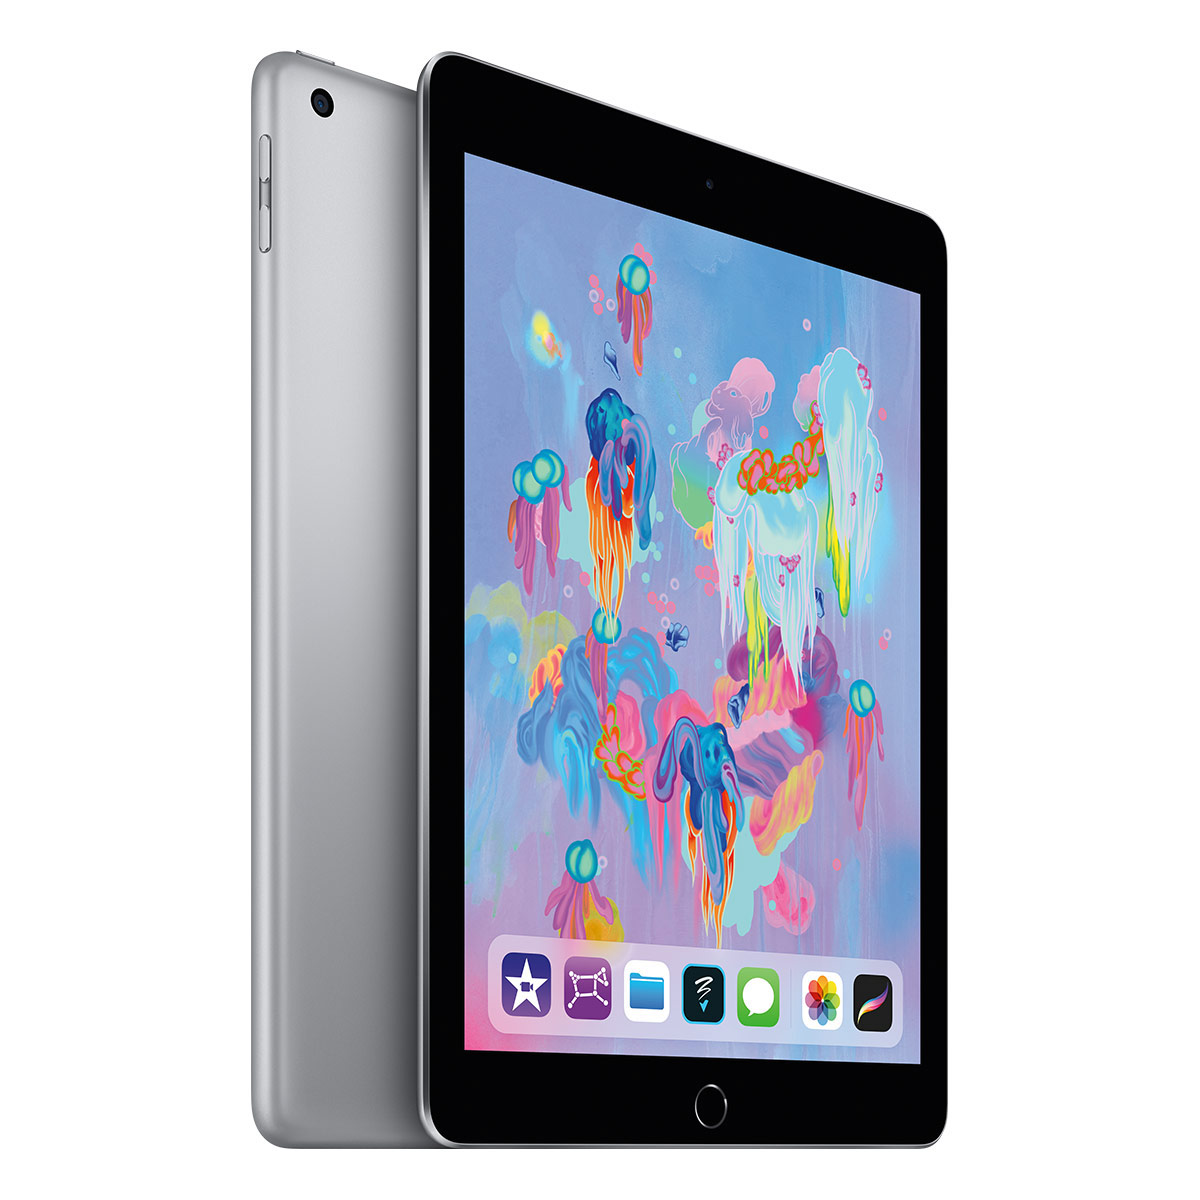 Education Apple iPad 32GB WiFi - Space Grey